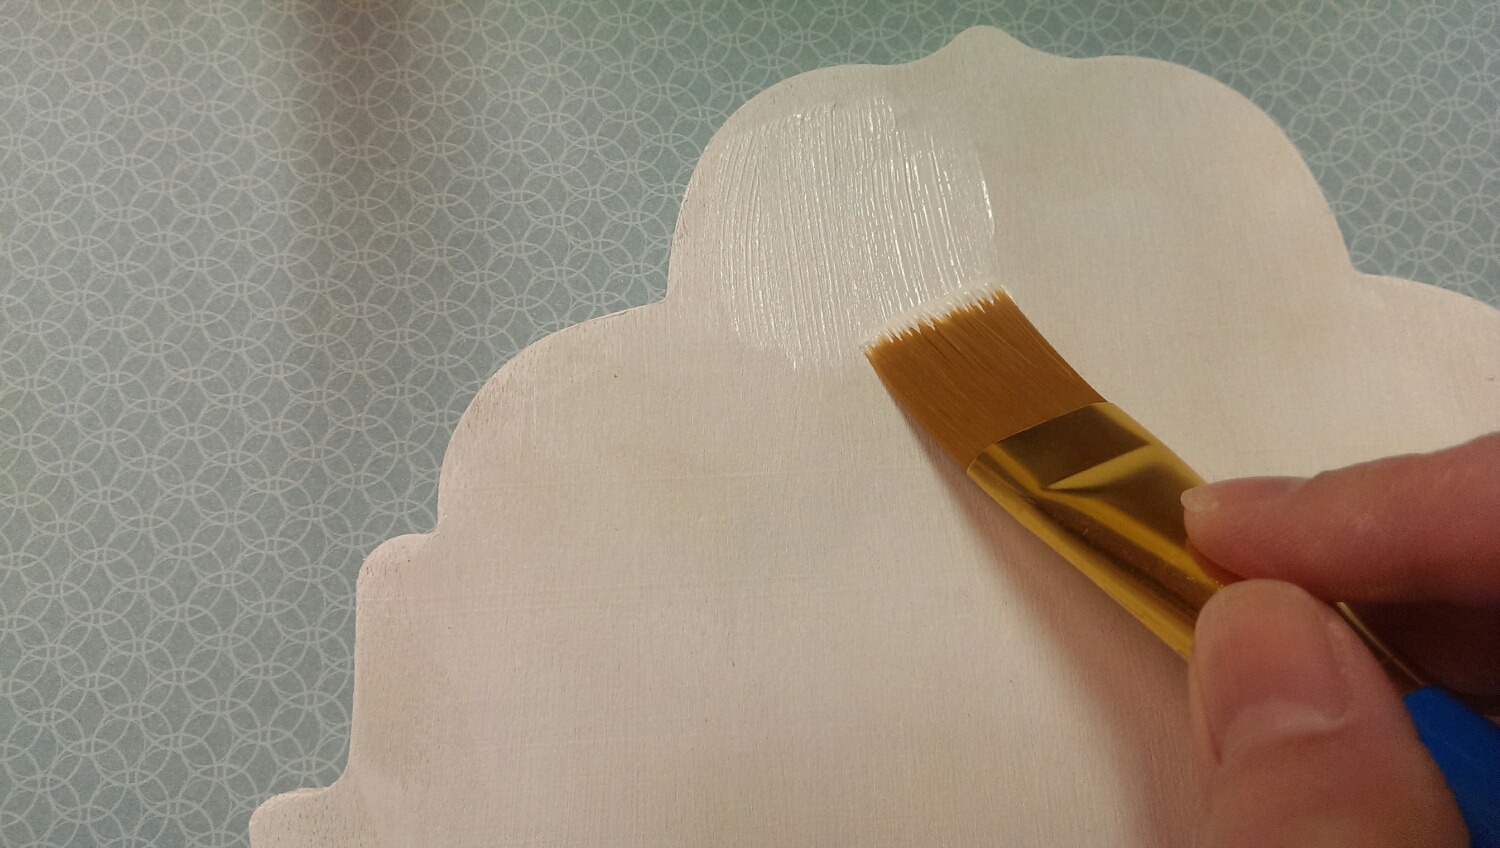 Applying the second coat of white acrylic paint to the wooden plaque.